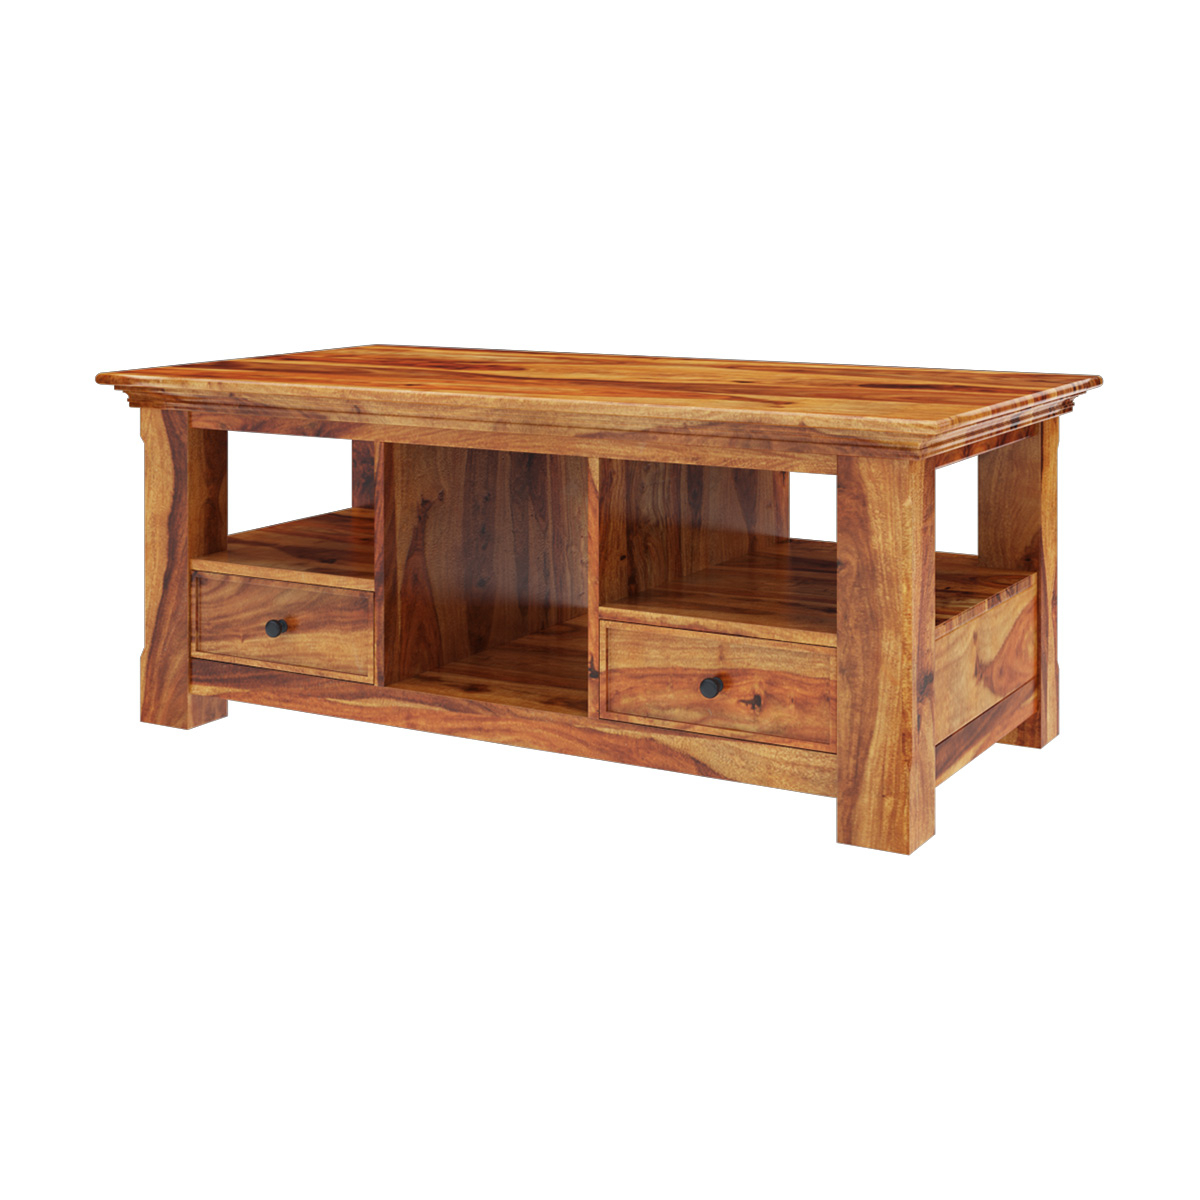 Modern Rustic Coffee Tables In Preferred Priscus Midcentury Modern Style Solid Wood Rustic Coffee Table (View 9 of 20)